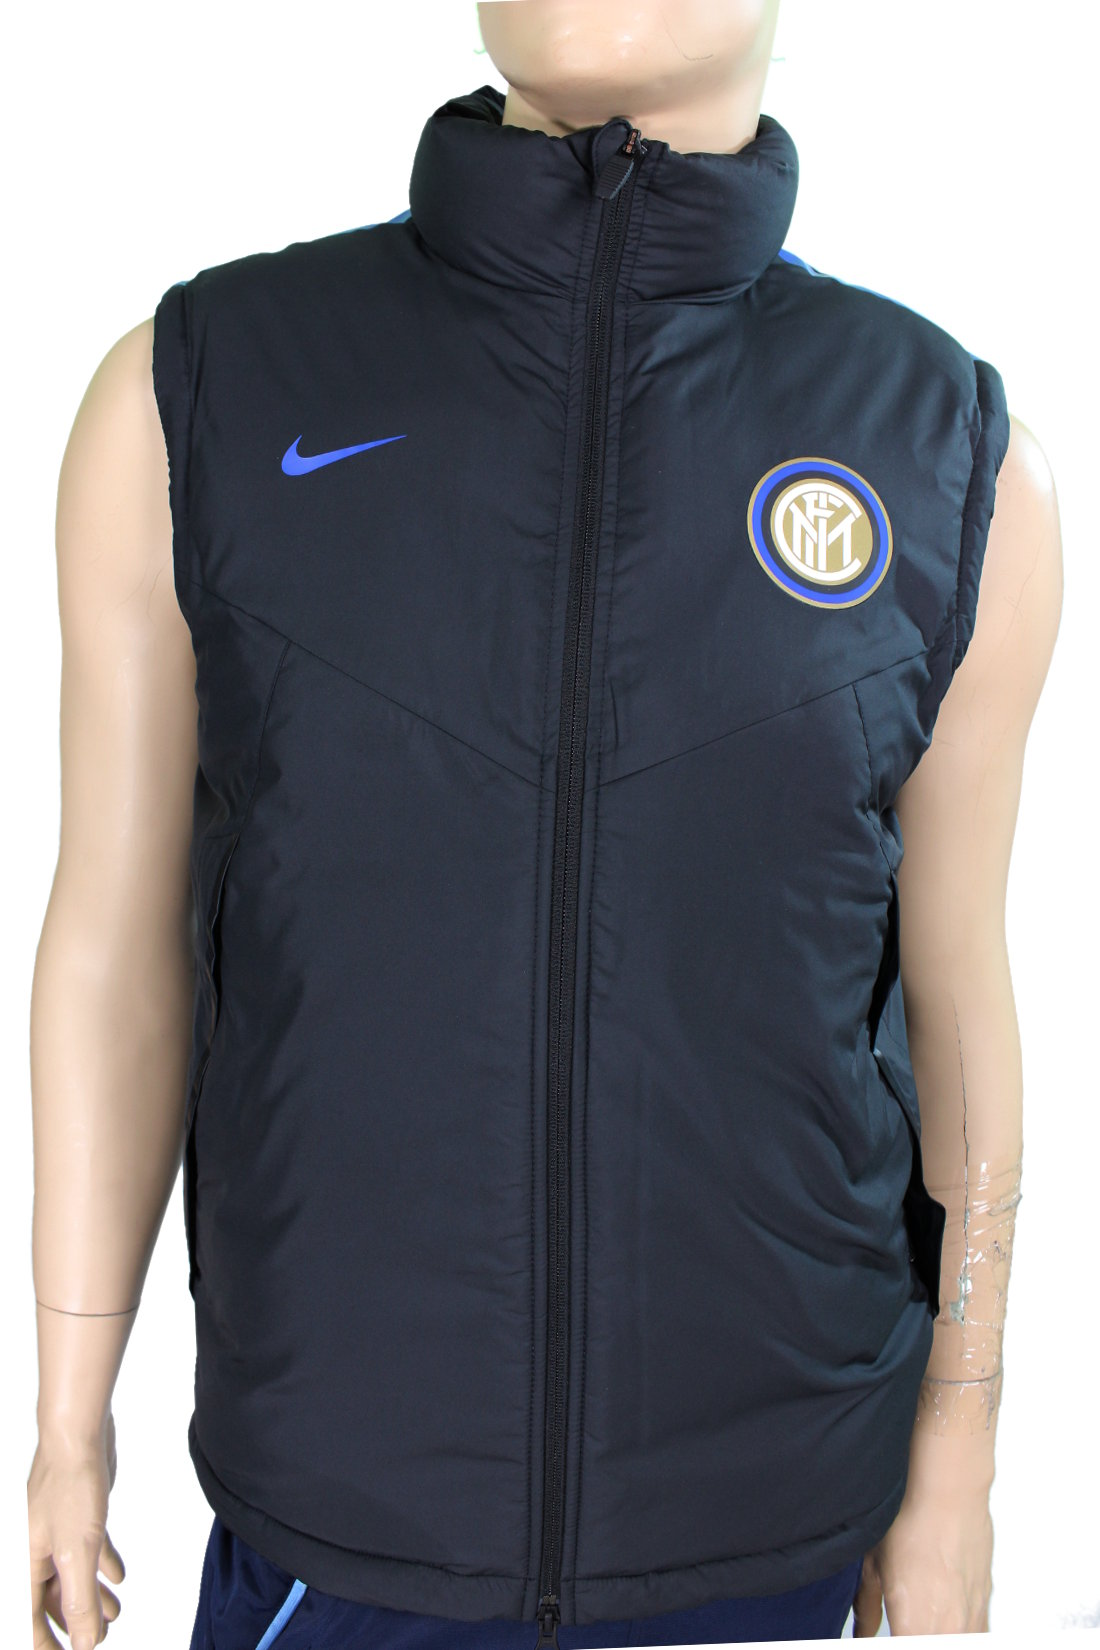 inter mailand nike daunenjacke padded winterjacke jacket. Black Bedroom Furniture Sets. Home Design Ideas